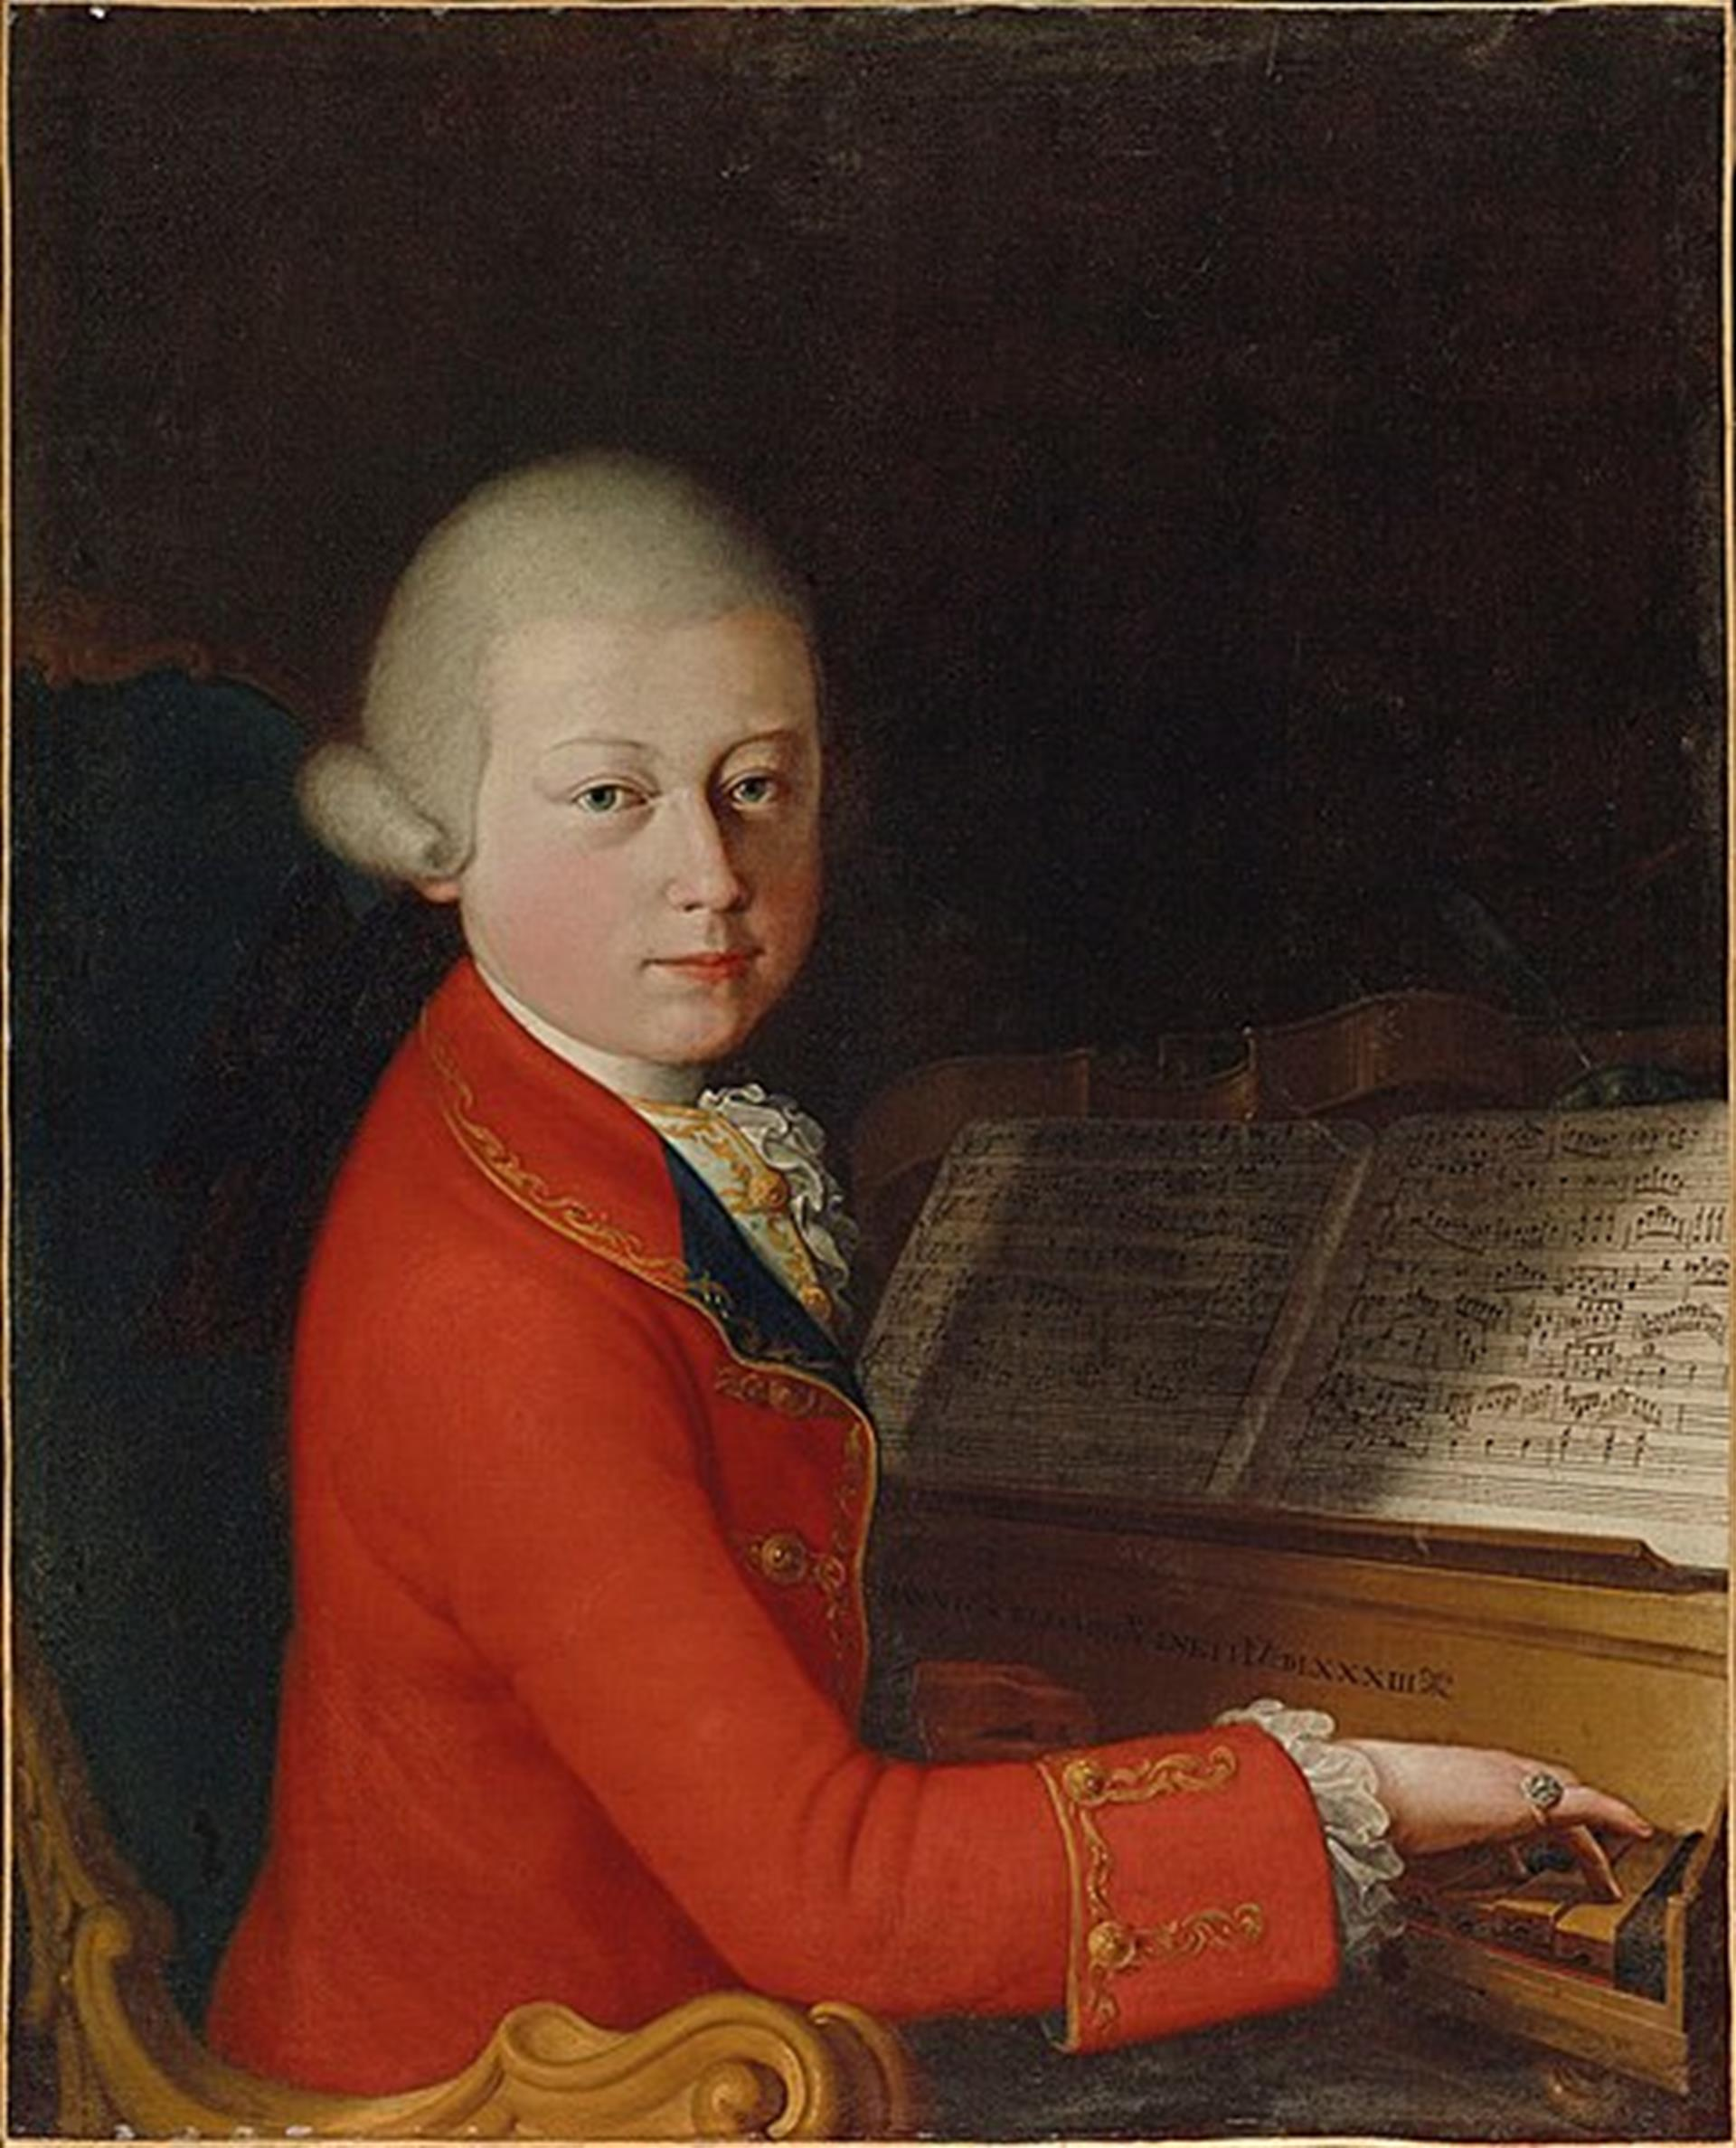 Portrait Of Wolfgang Amadeus Mozart At The Age Of 13 In Verona, 1770